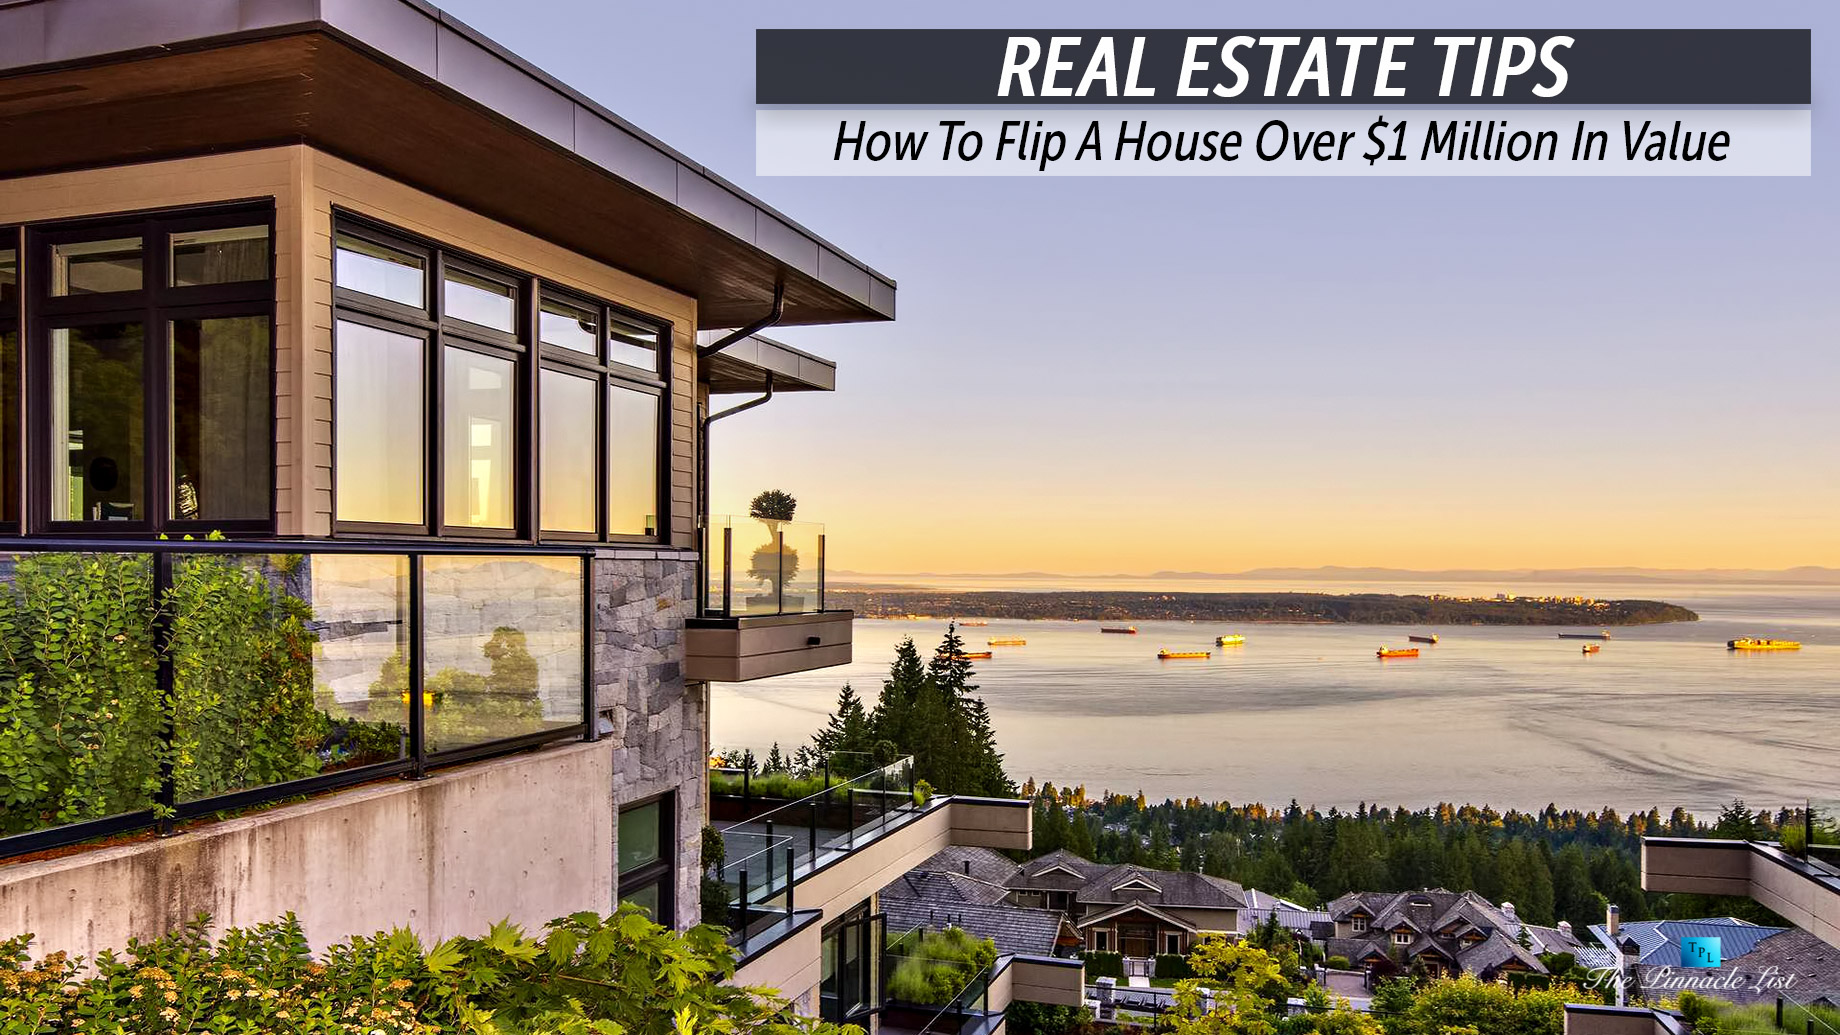 Real Estate Tips - How To Flip A House Over $1 Million In Value